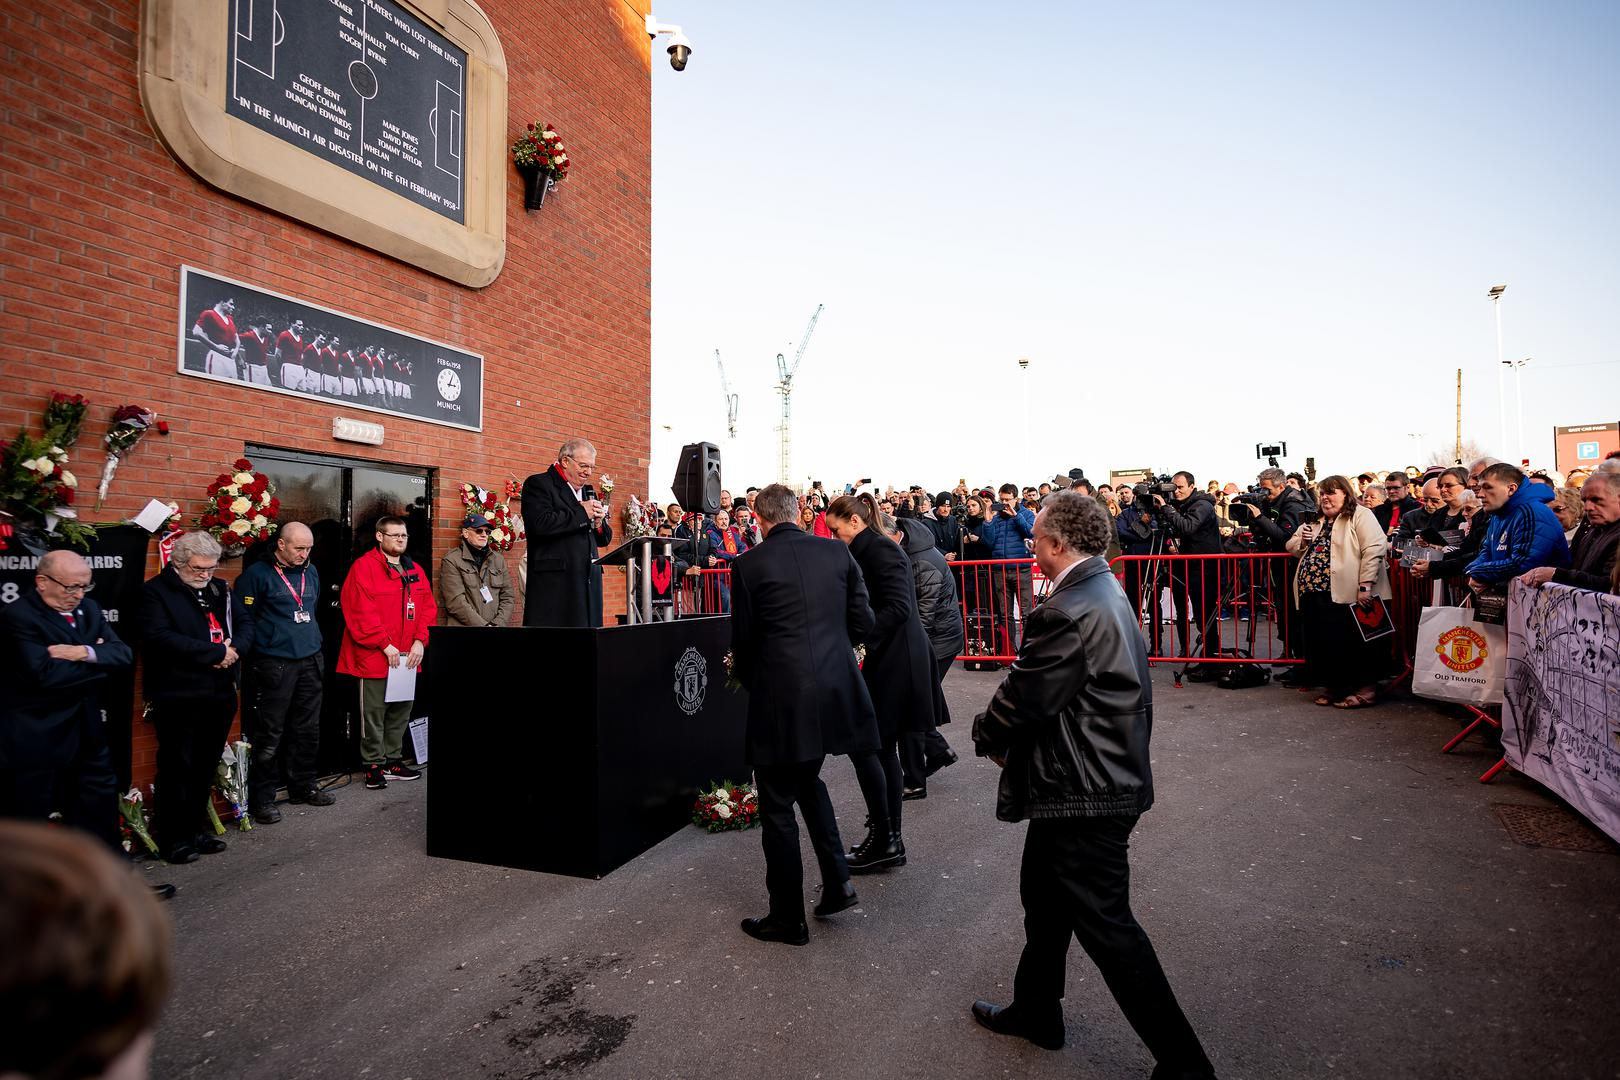 Ole Gunnar Solskjaer Casey Stoney and Bryan Robson lay wreaths at the Munich plaque at Old Trafford